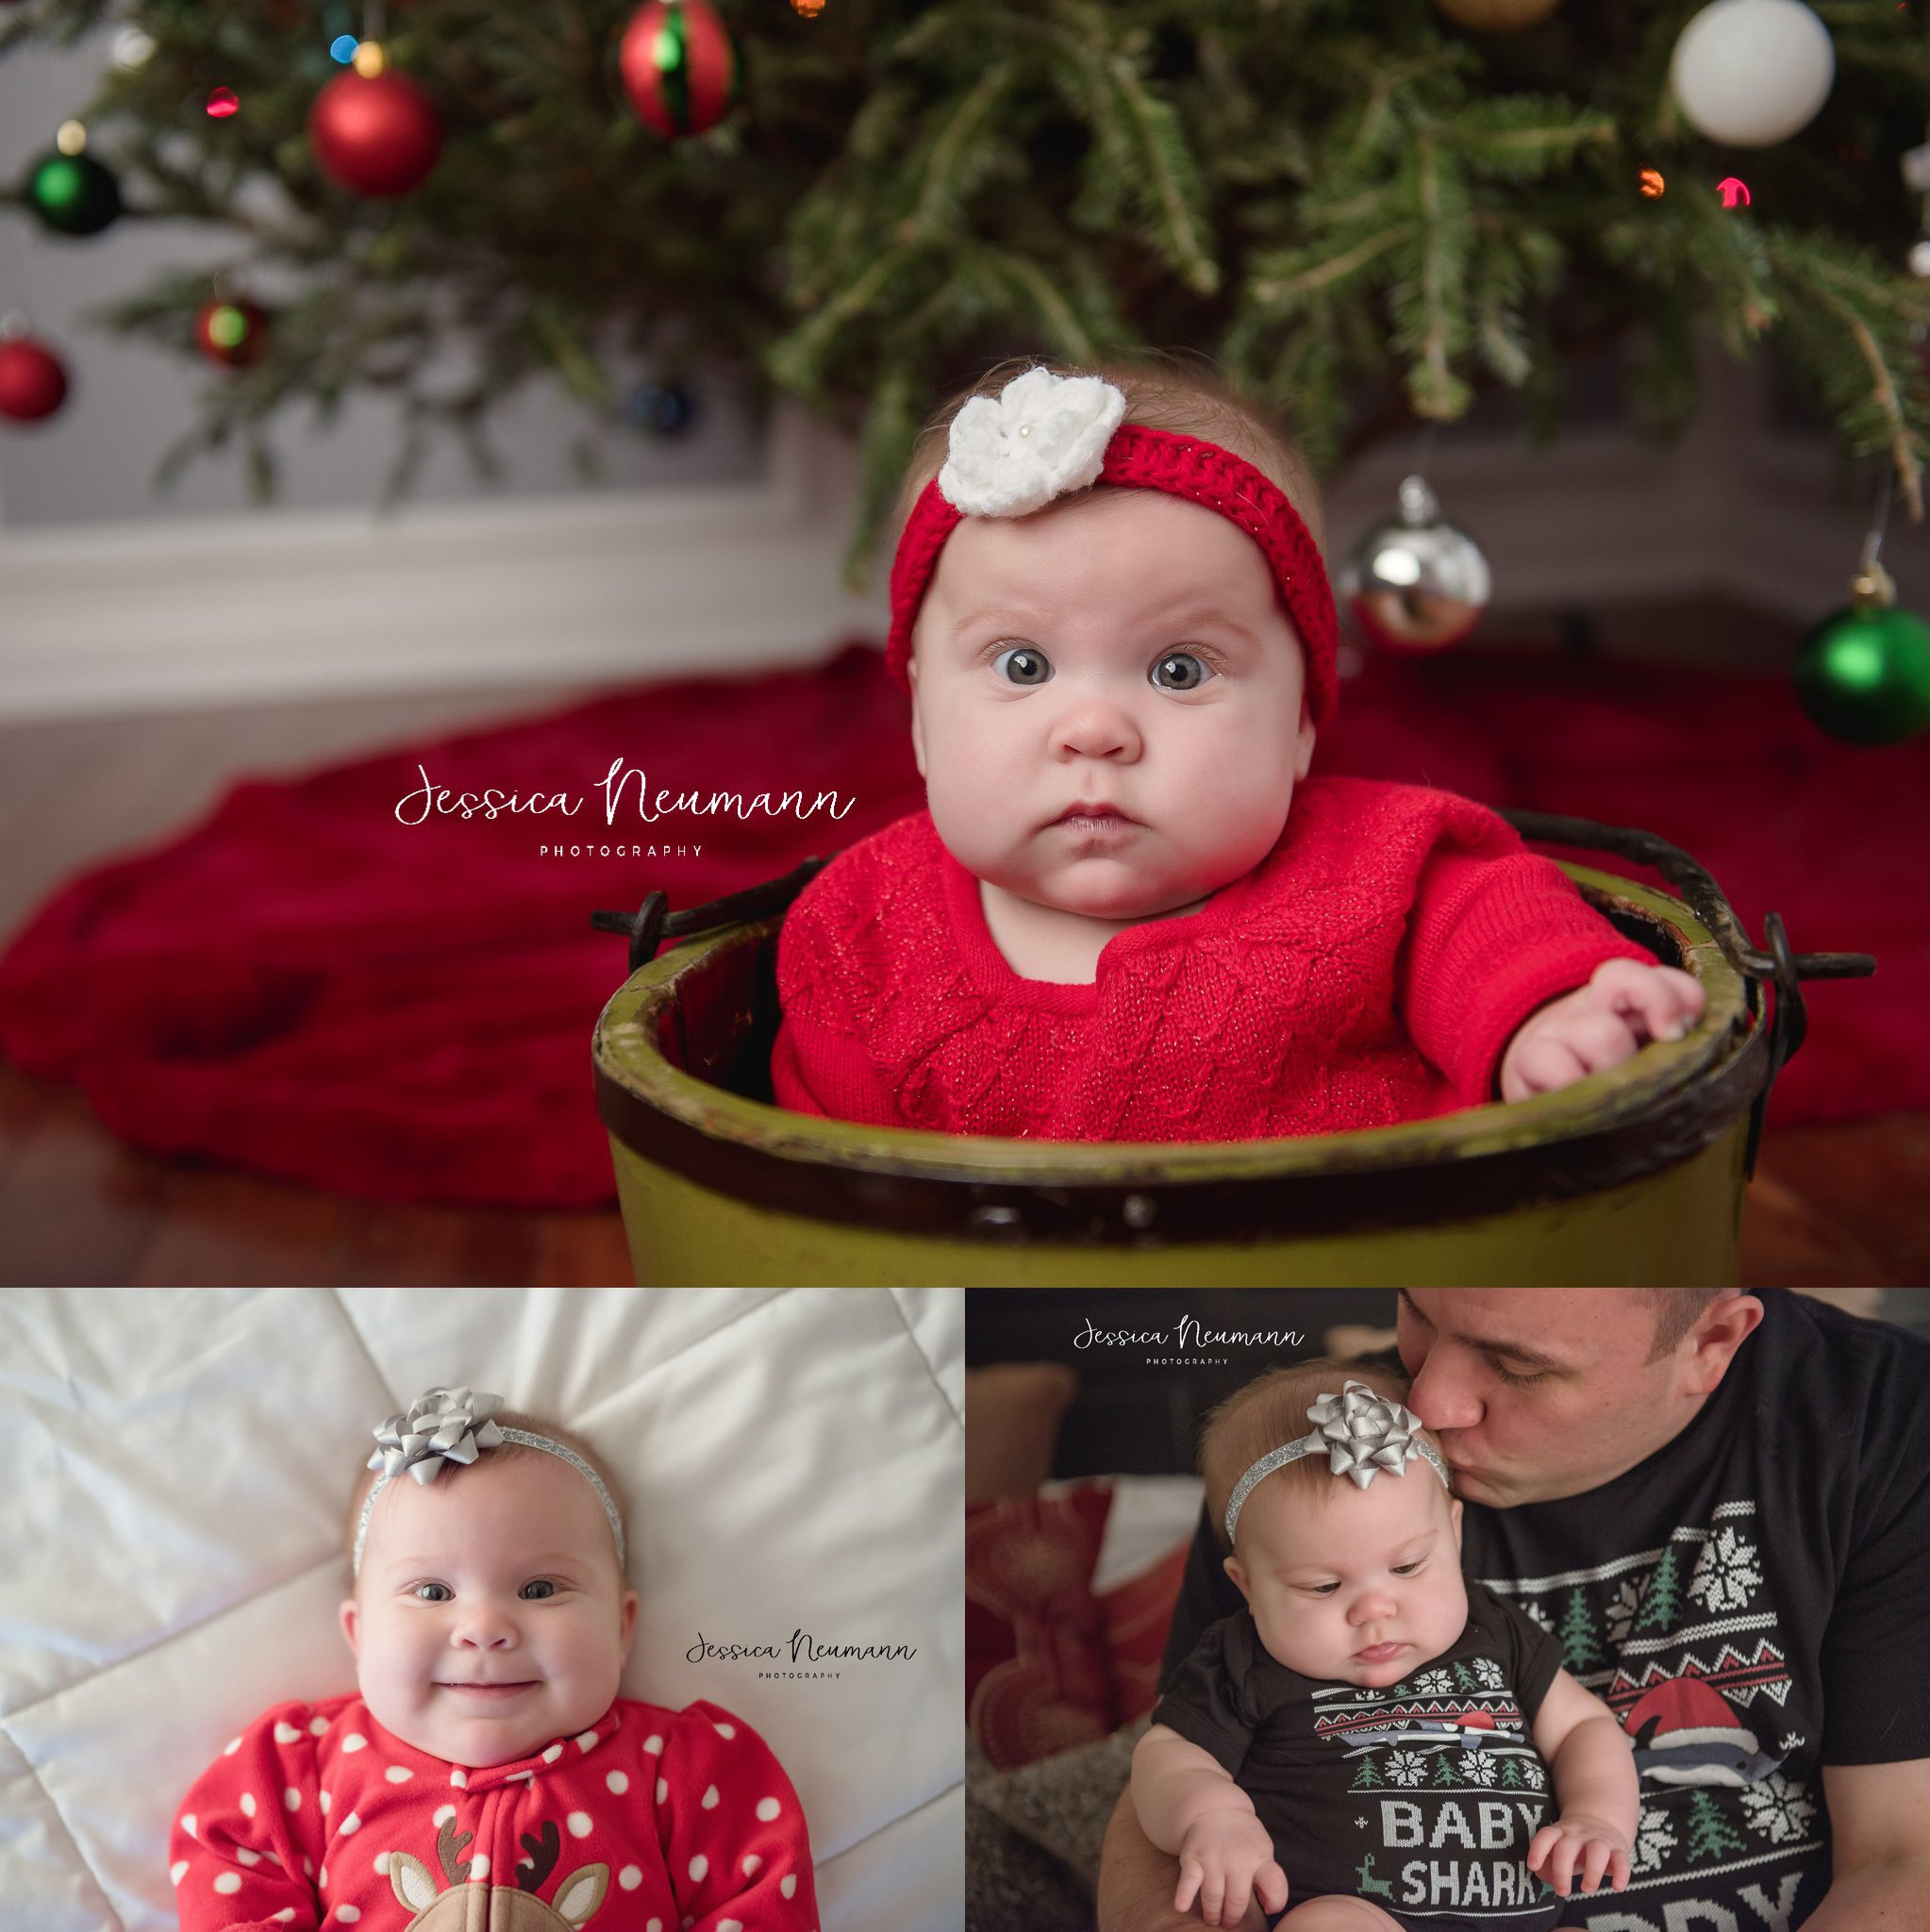 Baby girl Christmas outfits in Frederick, Maryland.jpg